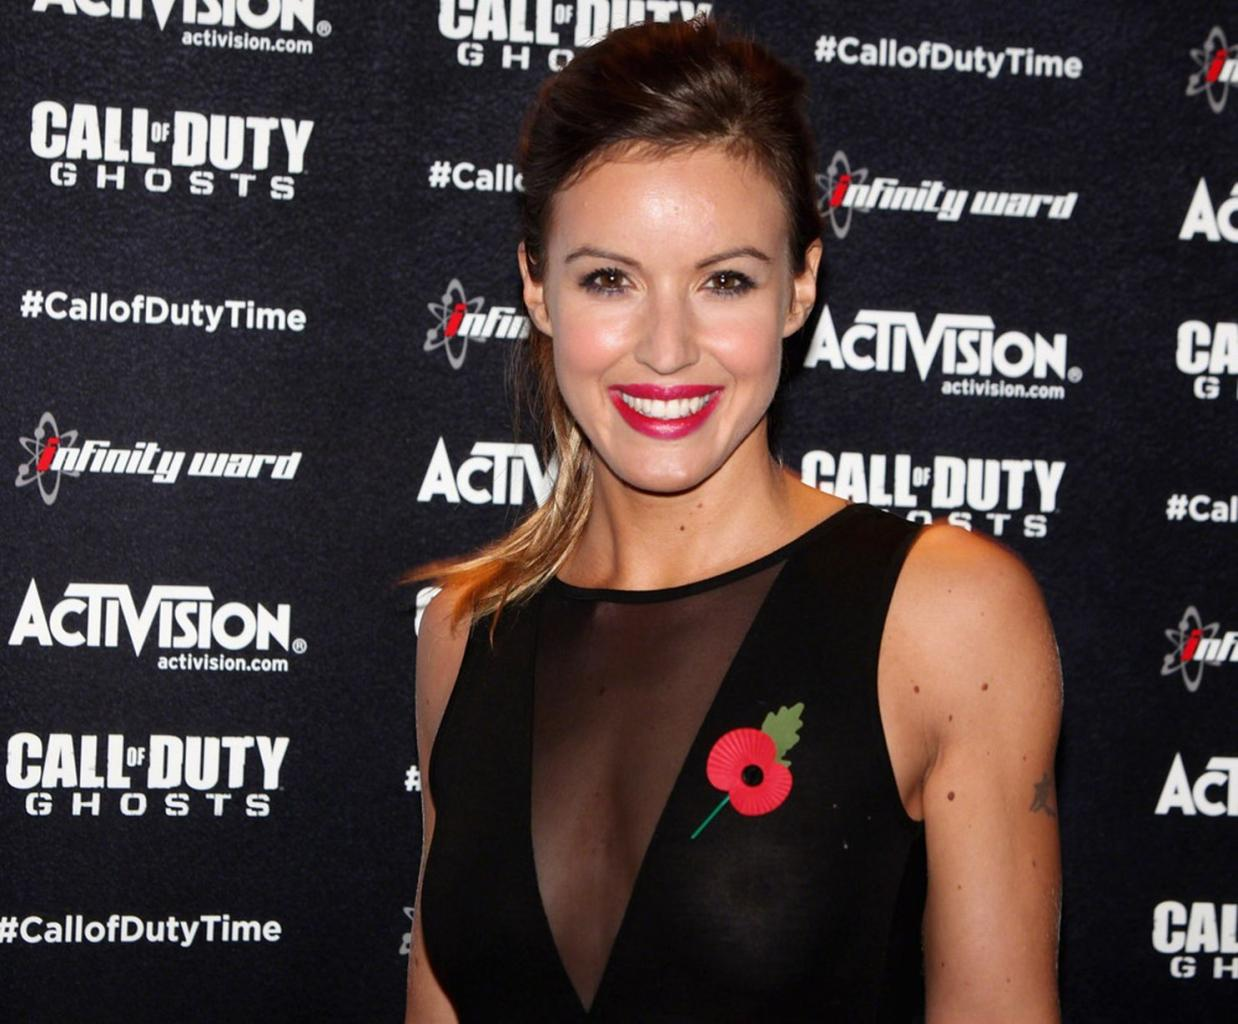 Charlie Webster Photos and wallpapers